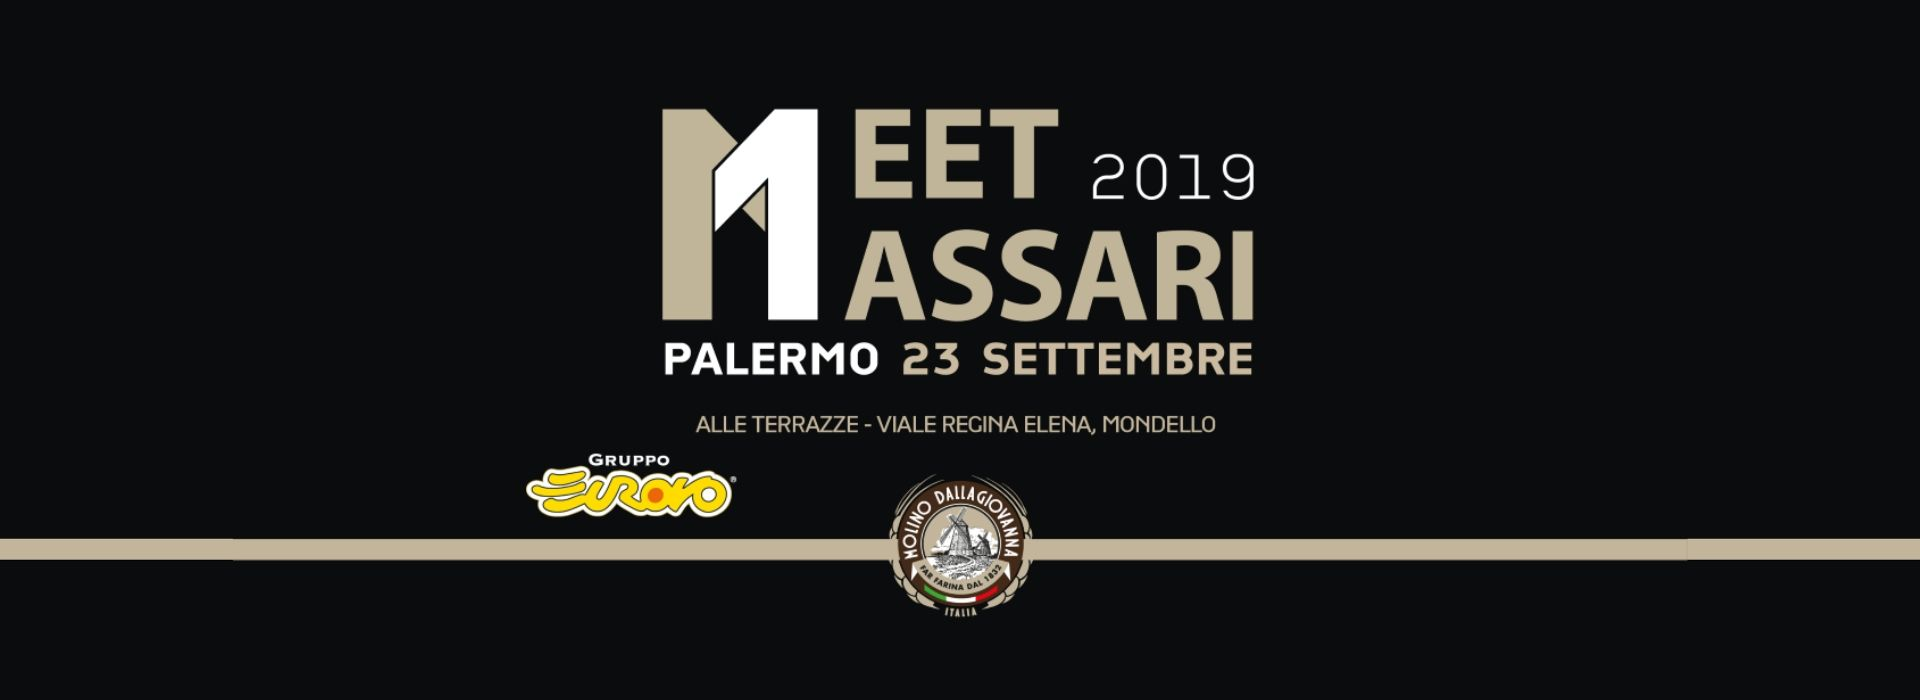 MEET MASSARI TOUR 2019 – TAPPA PALERMO